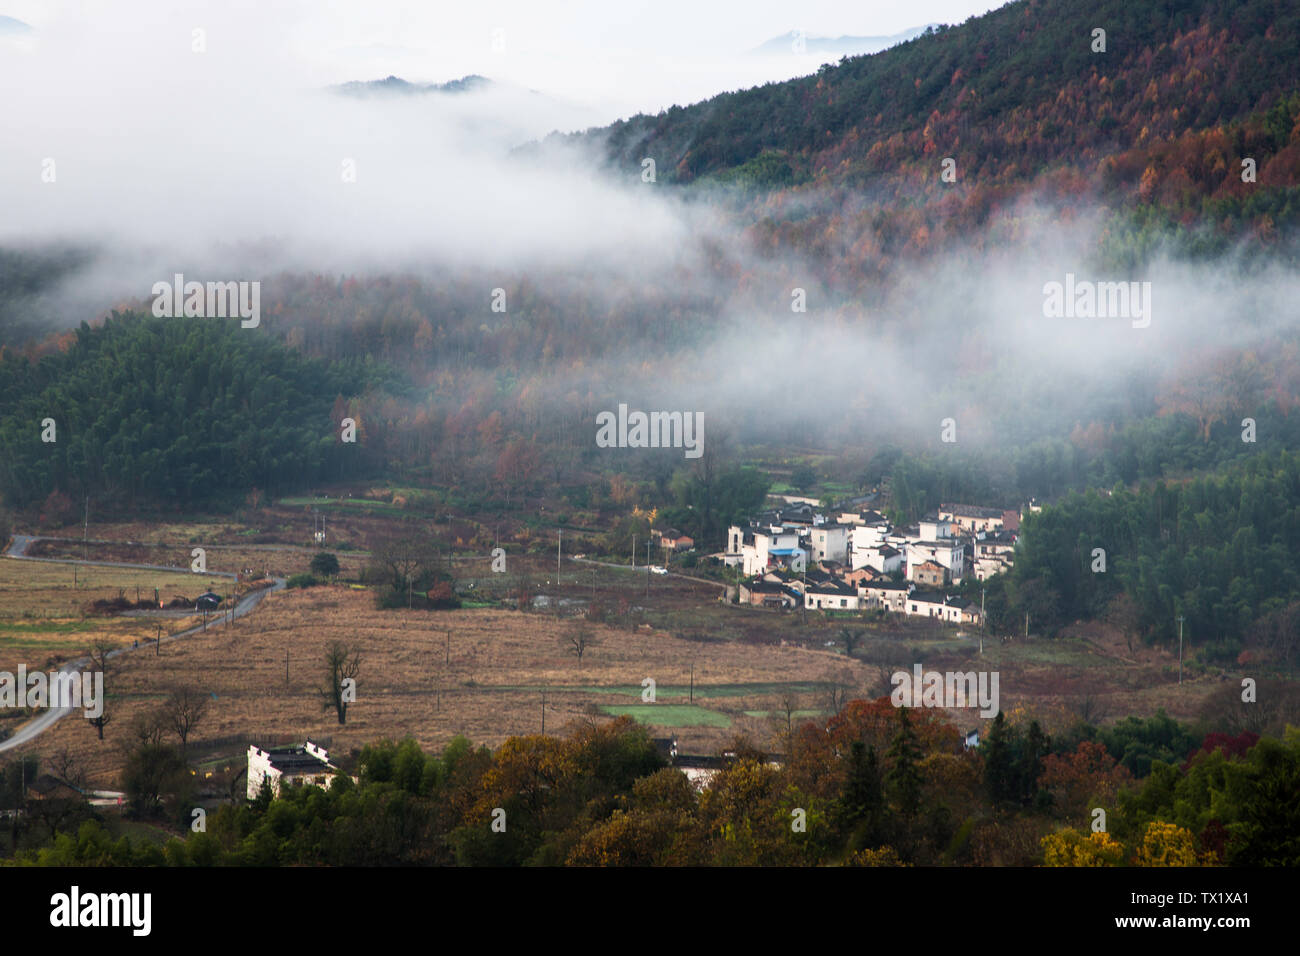 An ancient village shrouded by clouds and fog. Stock Photo